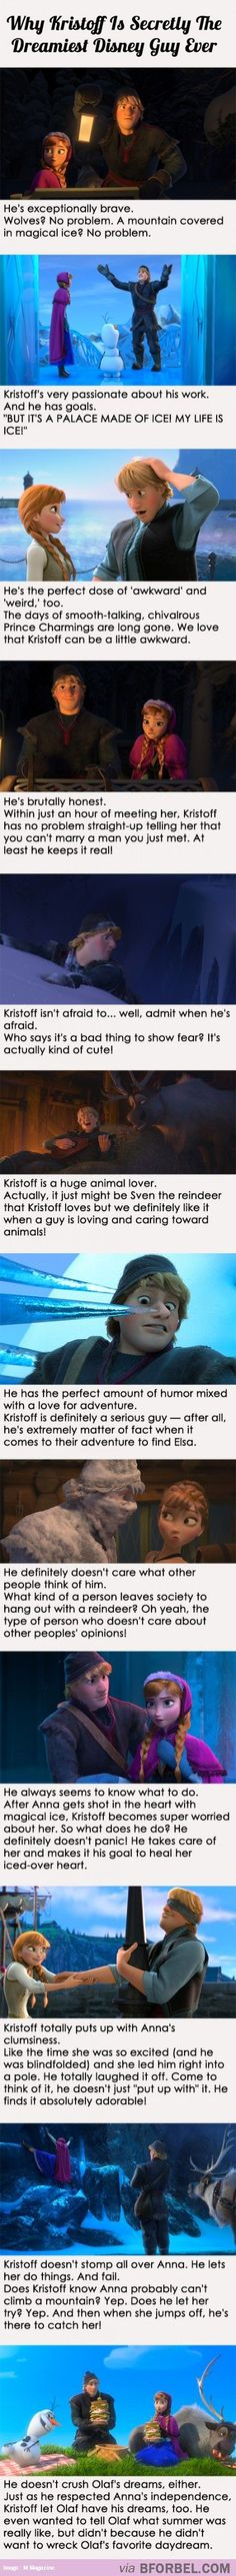 Frozen- my mom thinks Kristoff is a dork but I like him!